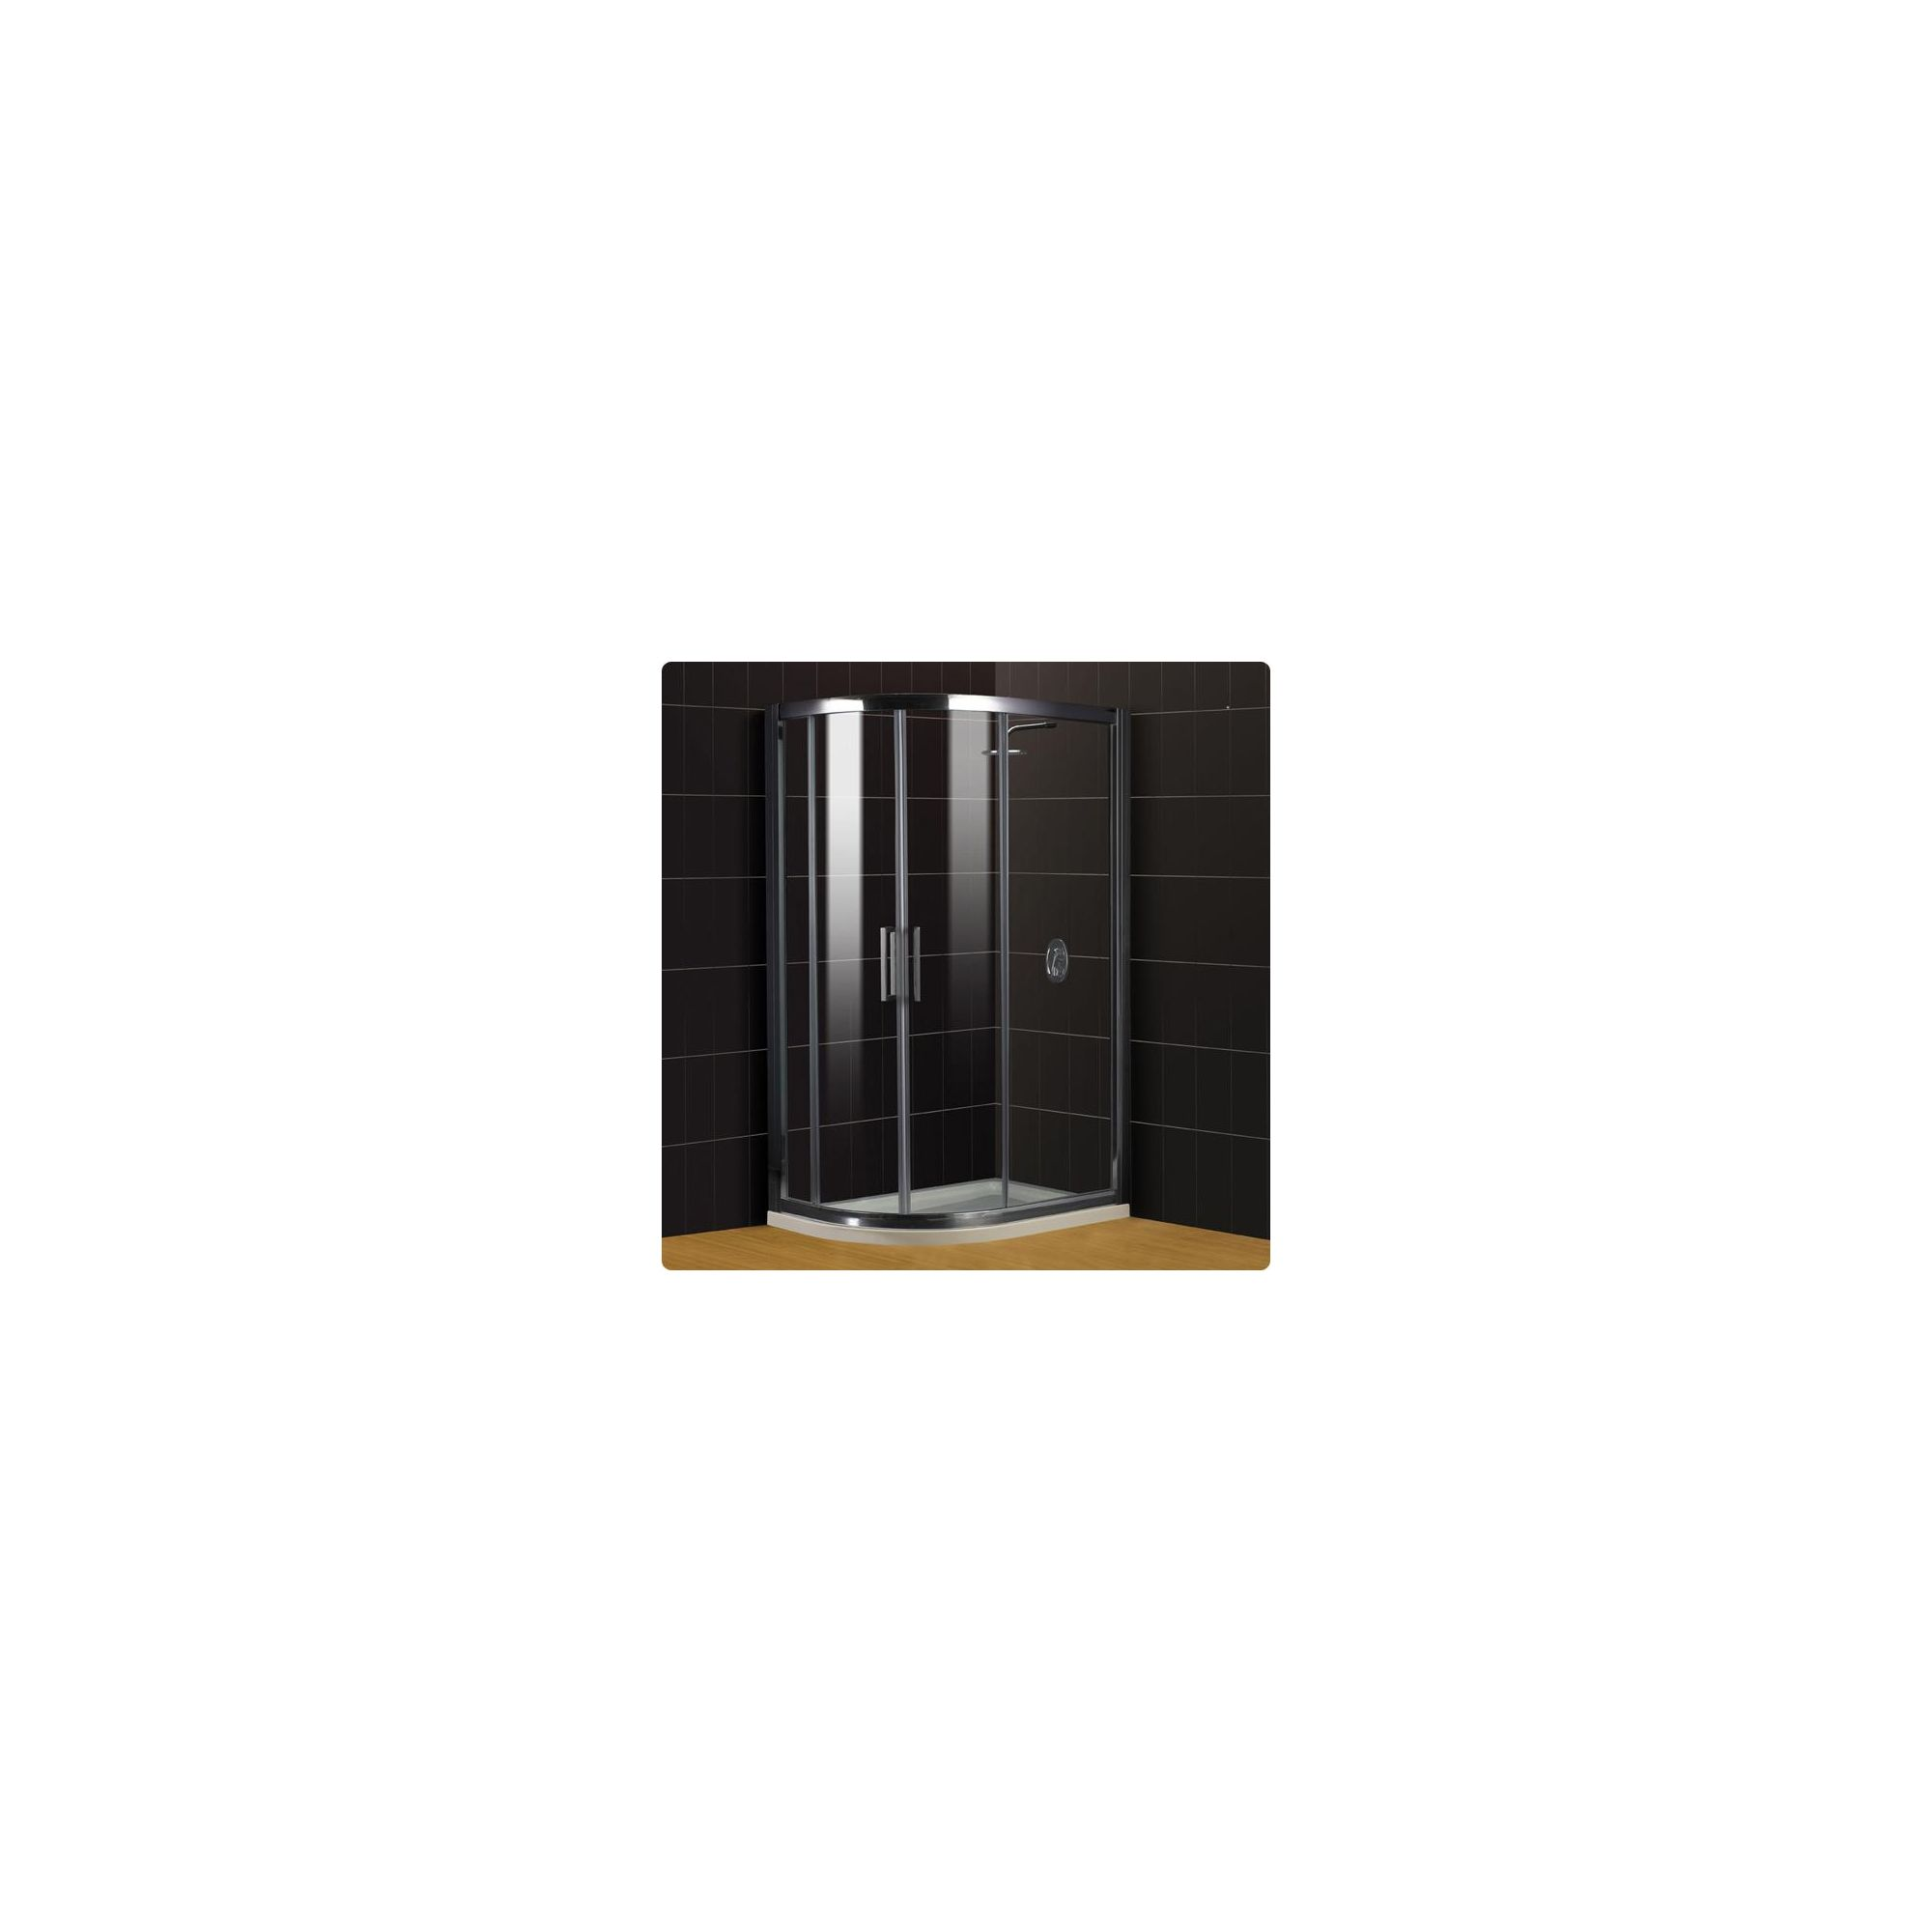 Duchy Supreme Silver Offset Quadrant Shower Enclosure (Complete with Tray) 1000mm x 760mm, 8mm Glass at Tesco Direct